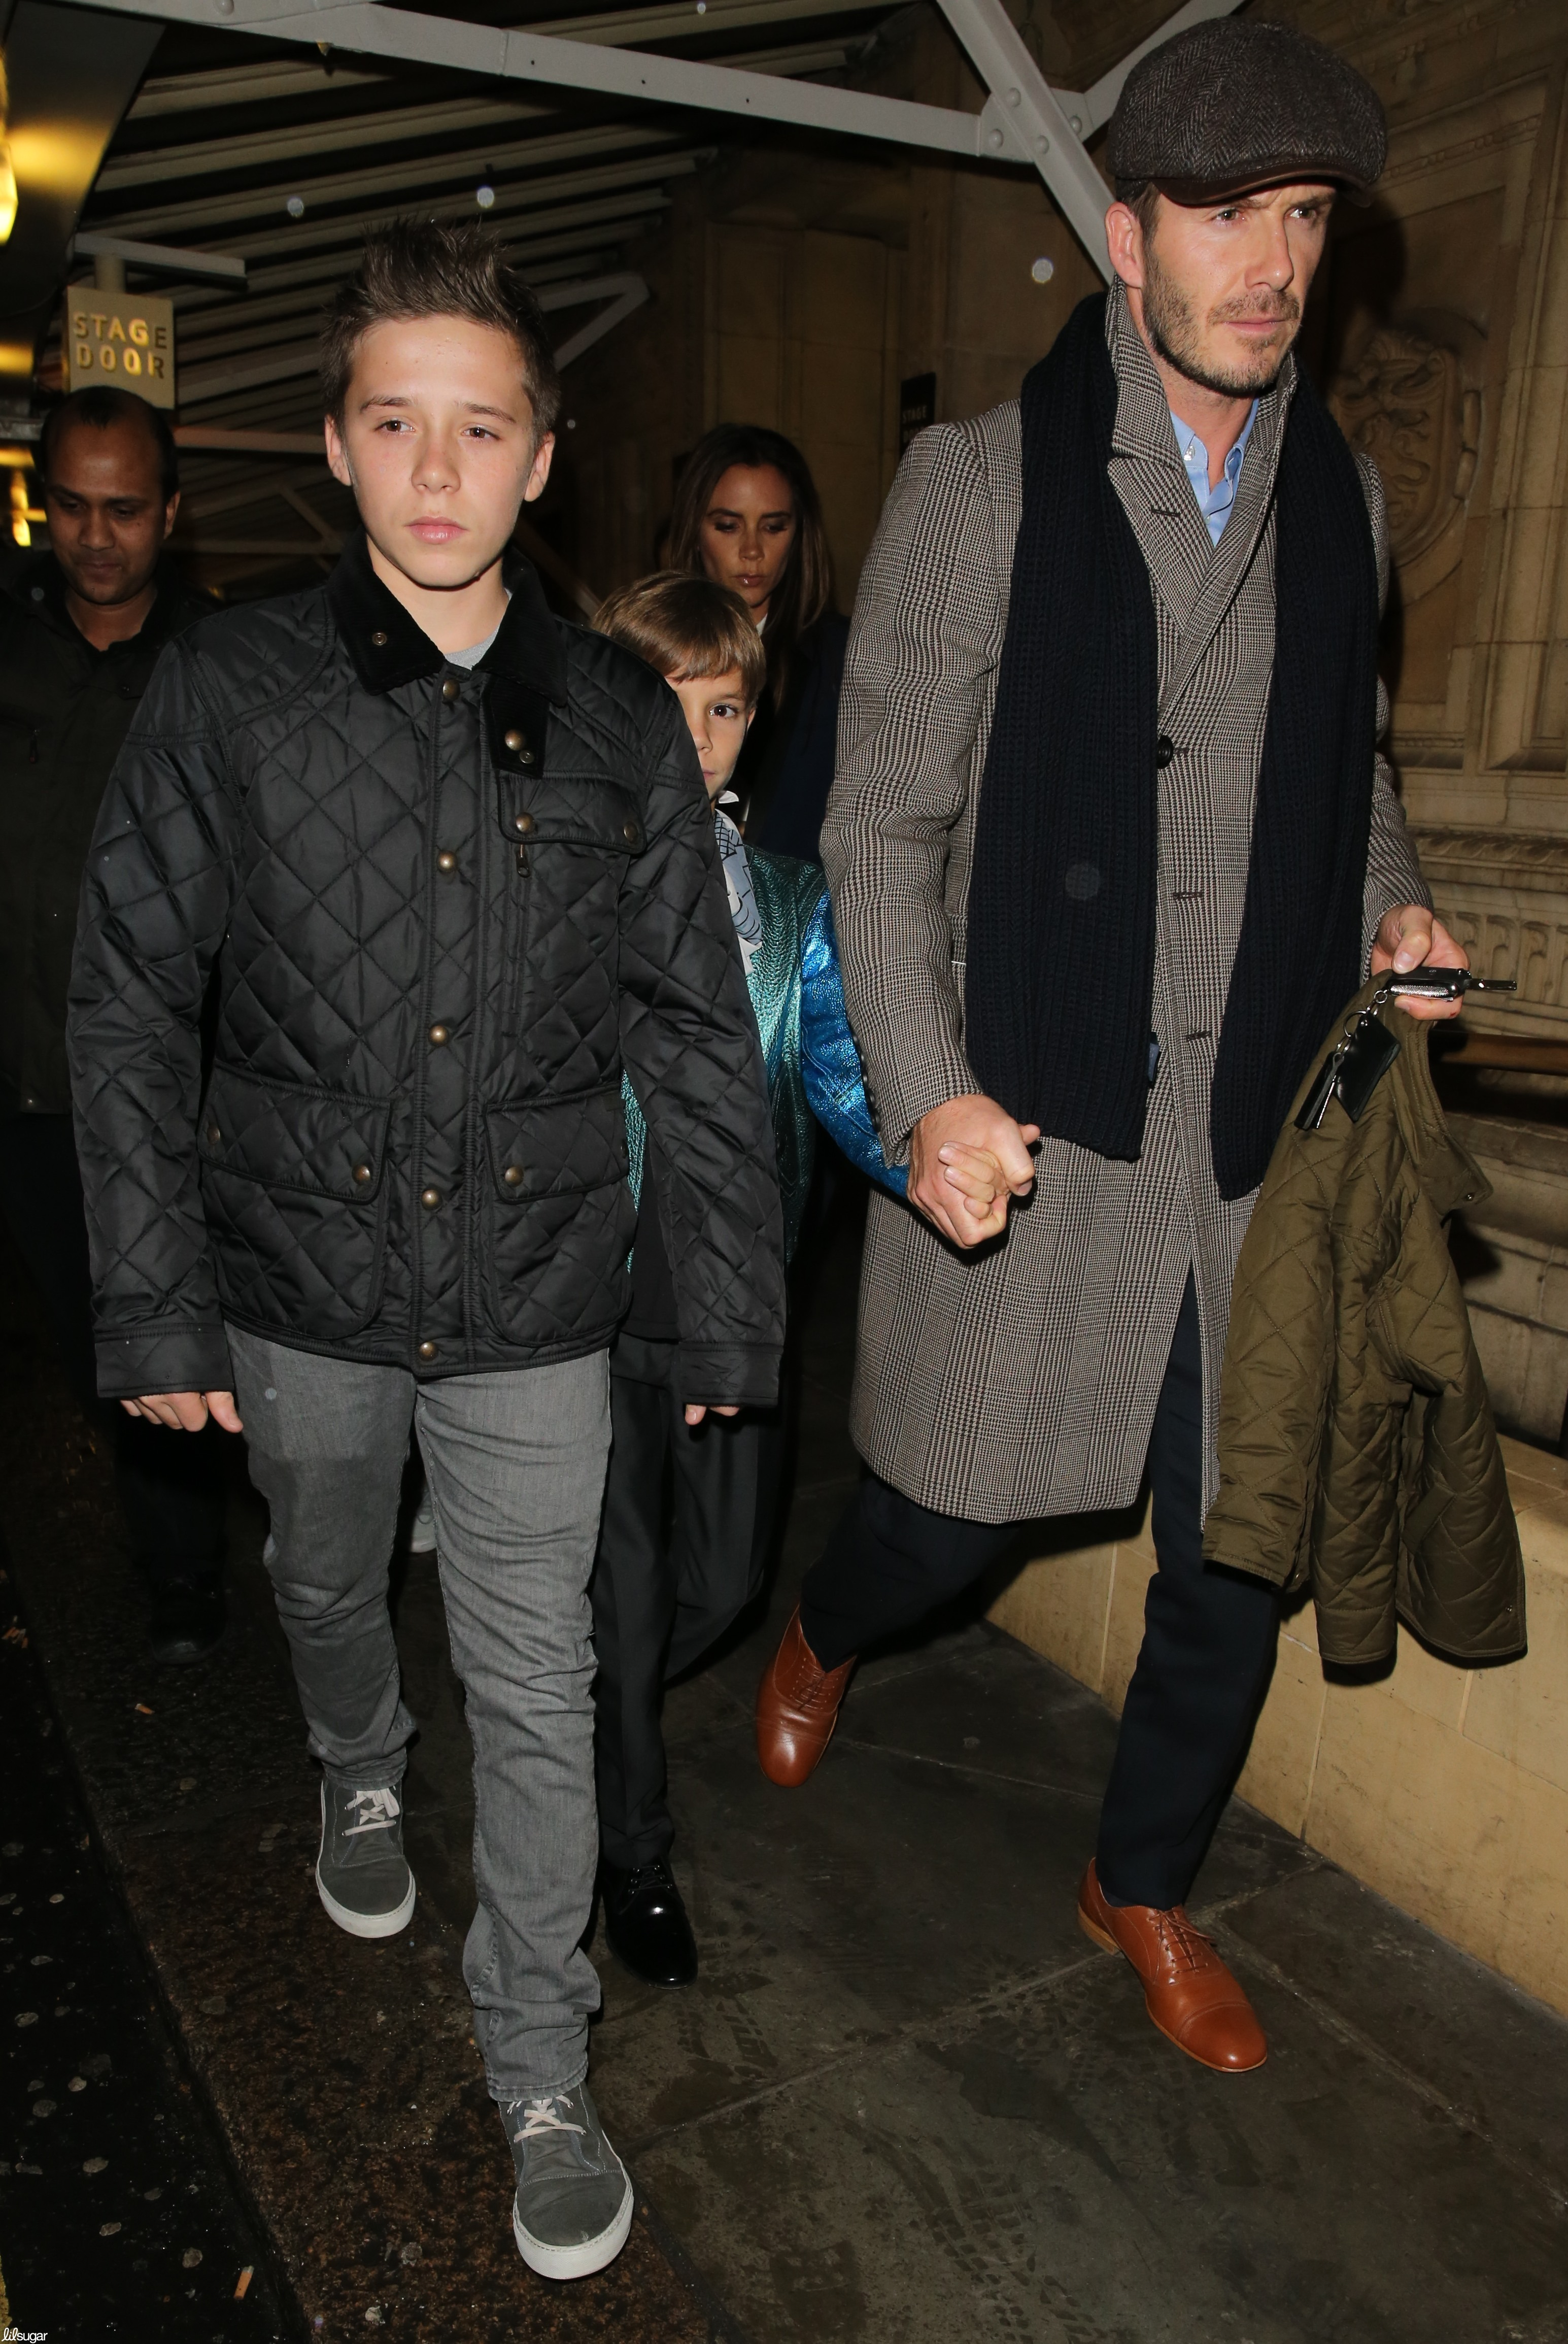 Victoria Beckham and David Beckham saw a Cirque du Soleil show in London on Saturday with Brooklyn Beckham, Cruz Beckham, and Romeo Beckham.